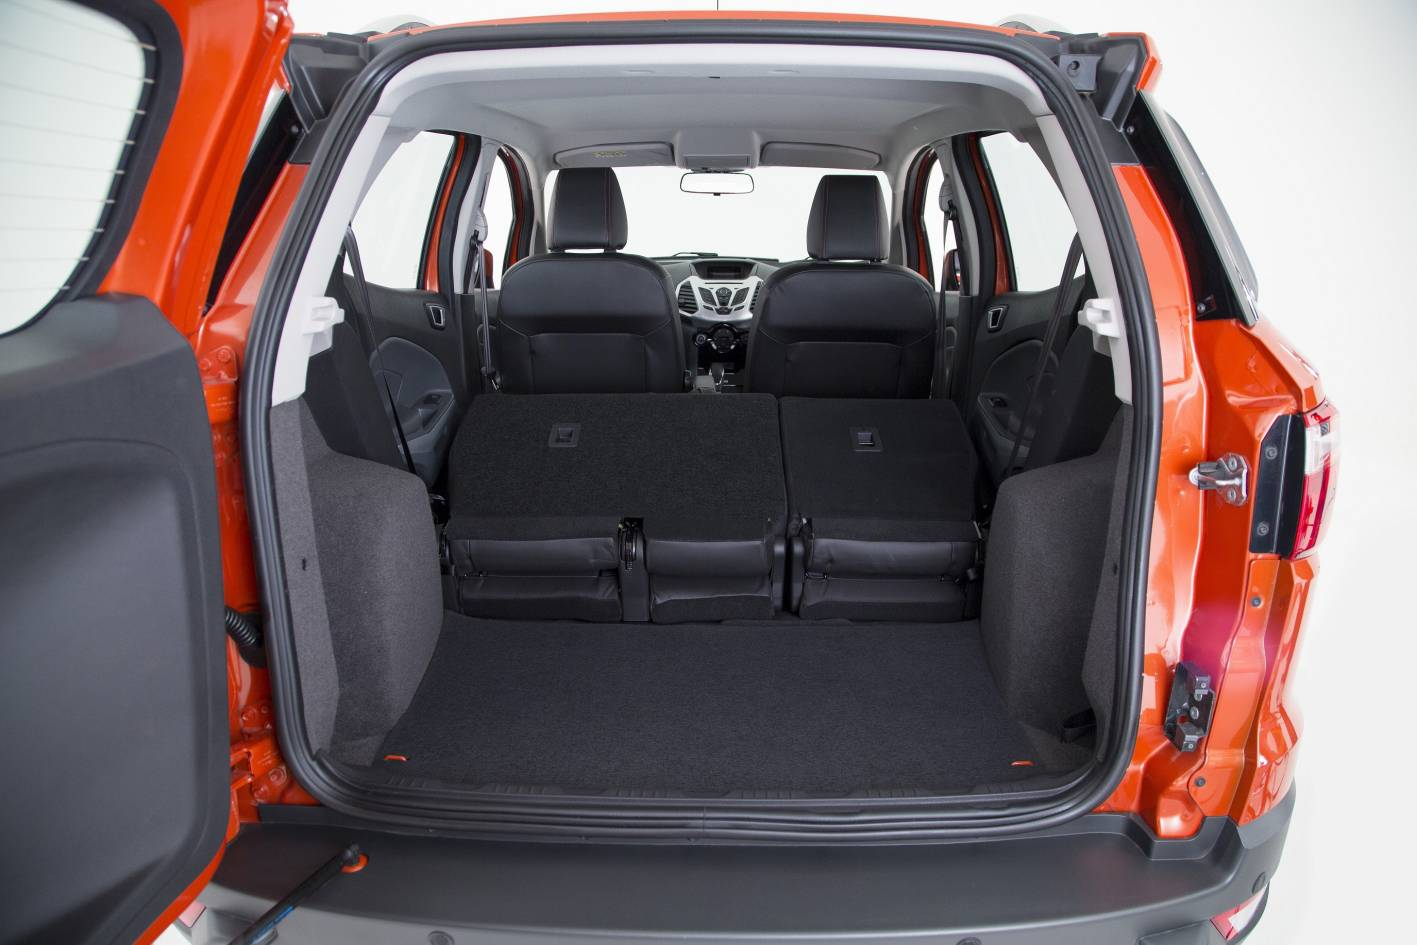 Range Rover For Sale Usa >> Ford EcoSport Titanium cargo space